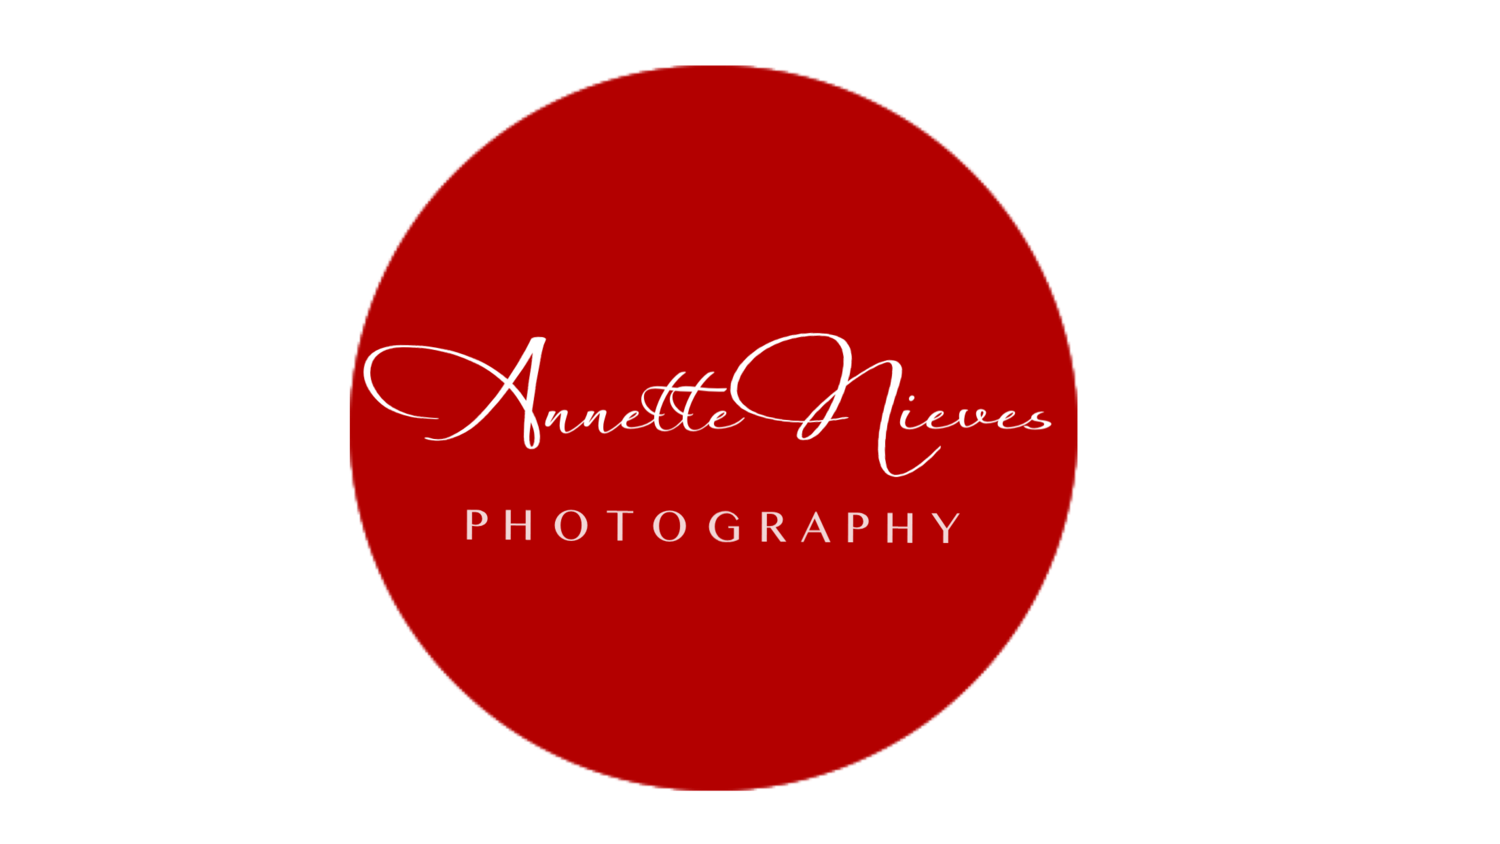 Annette Nieves